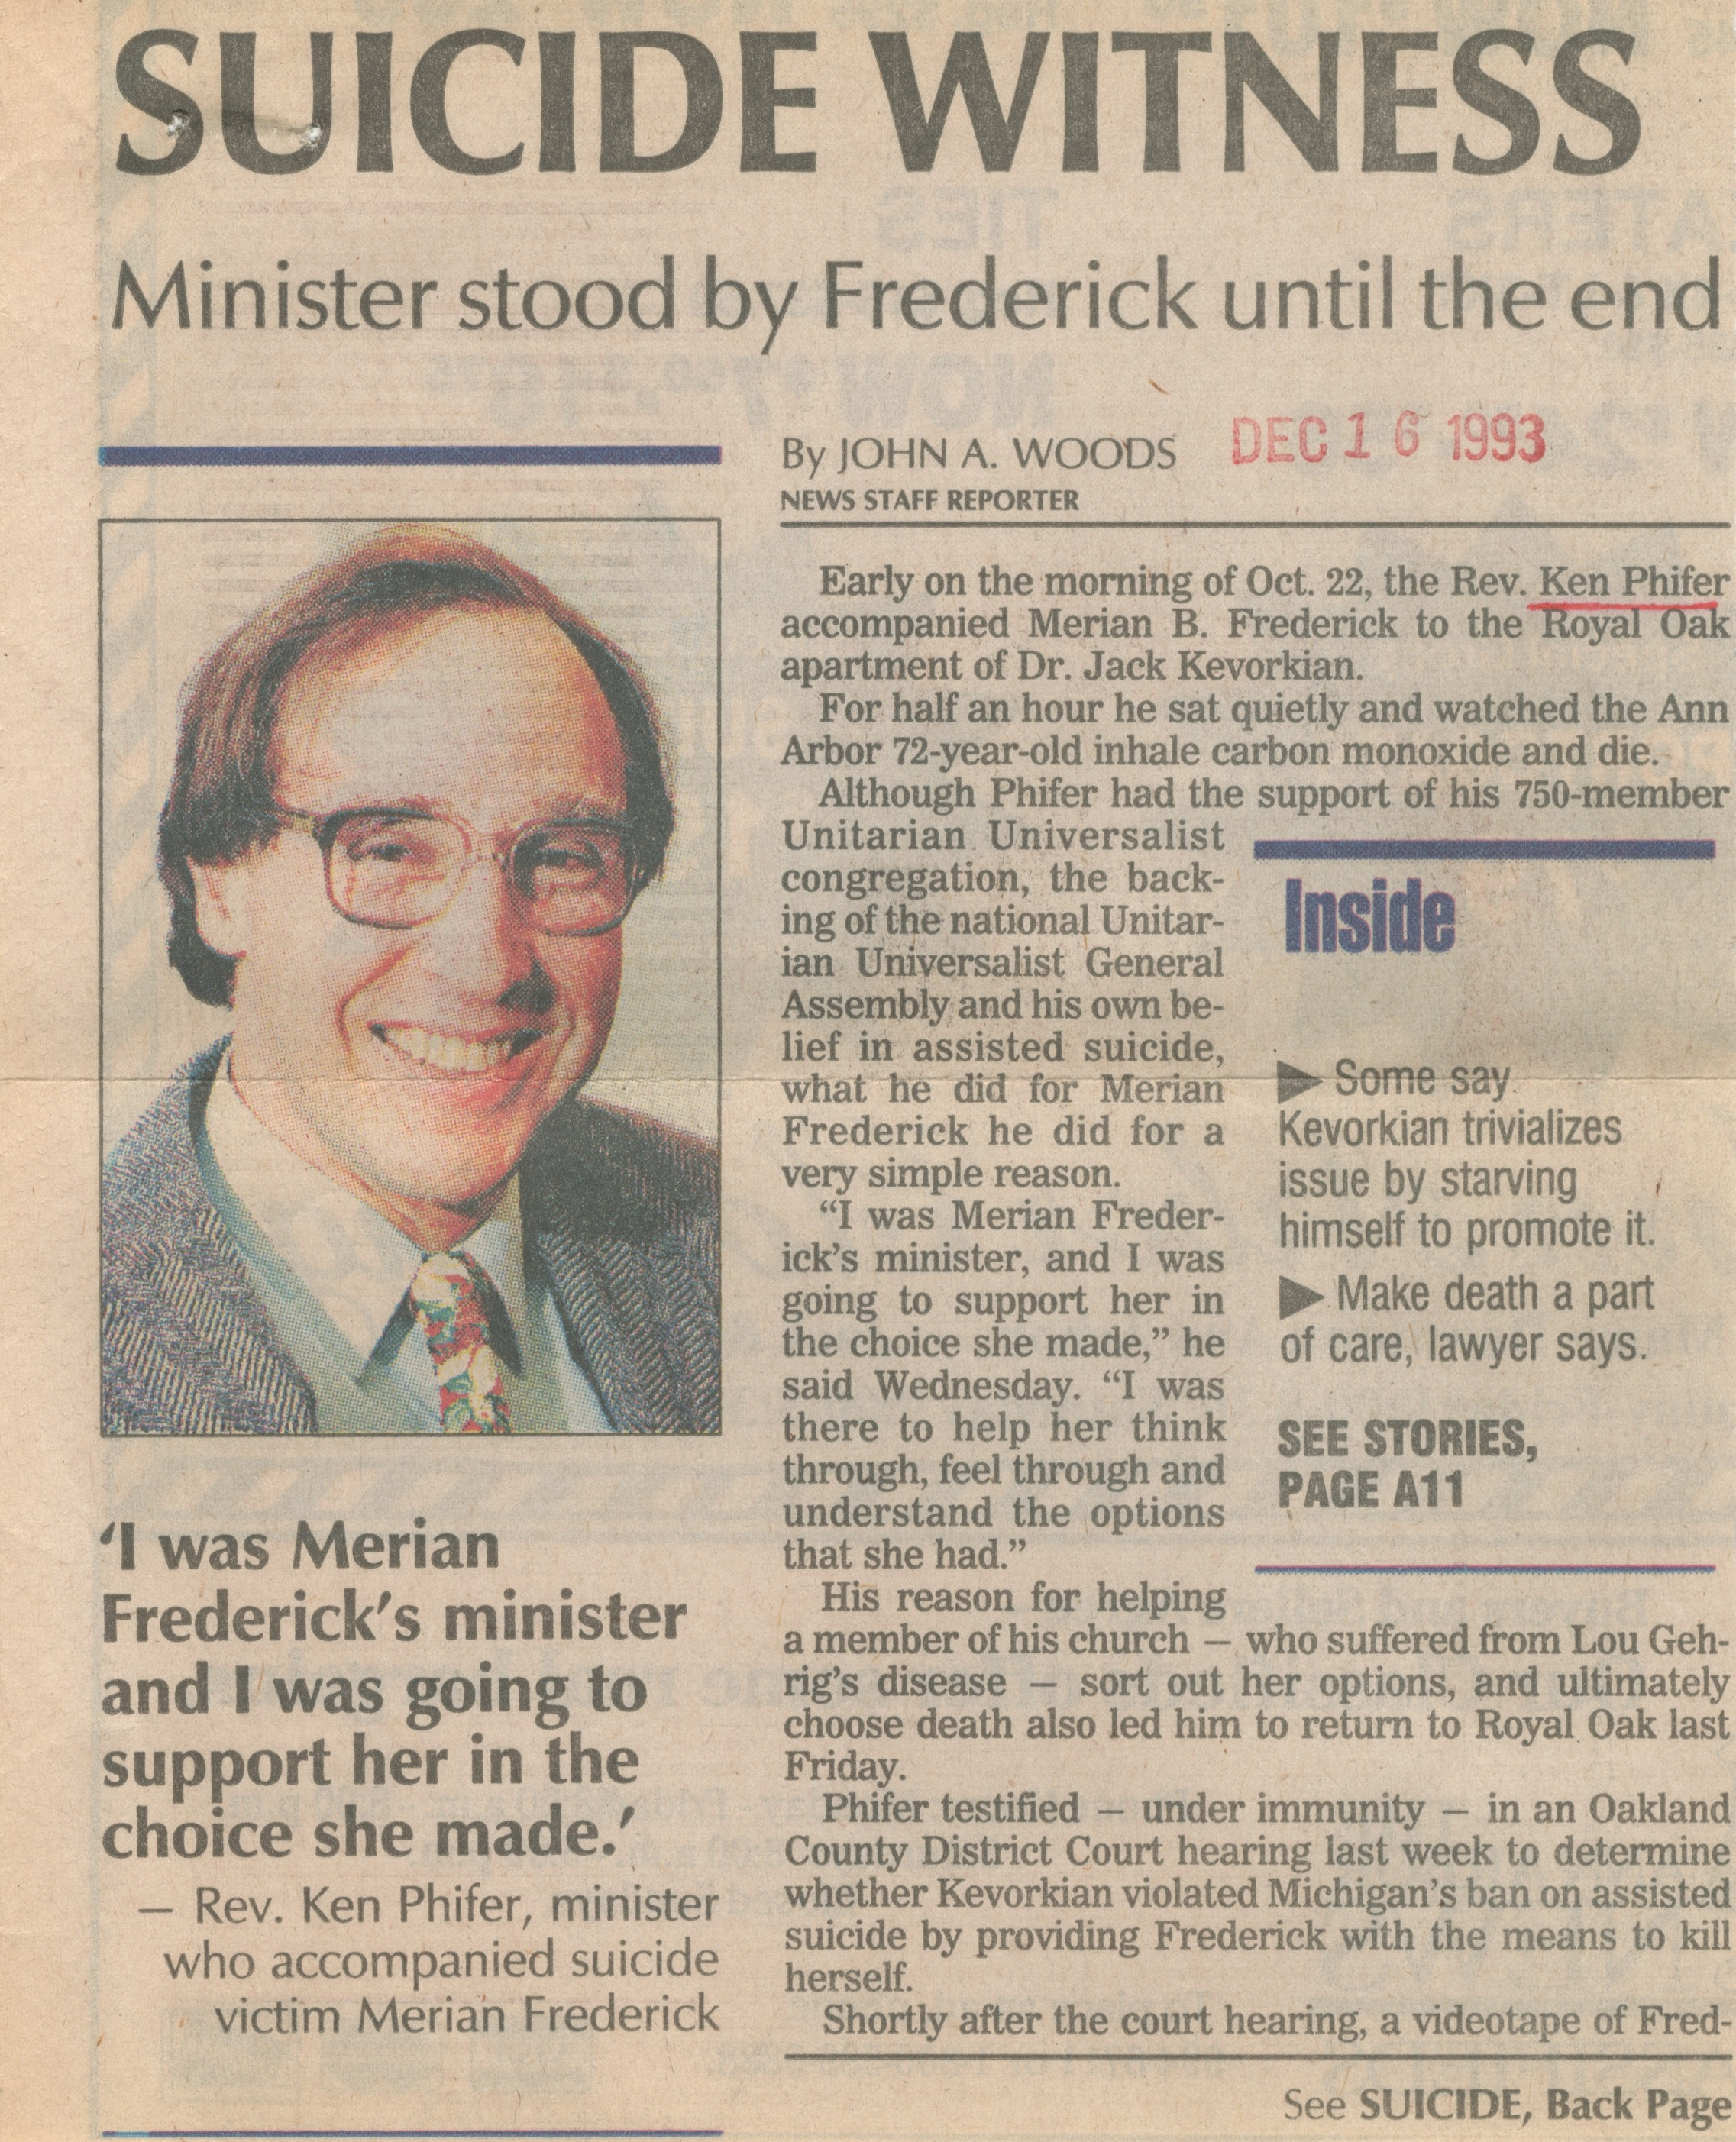 Suicide Witness - Minister Stood By Frederick Until The End image